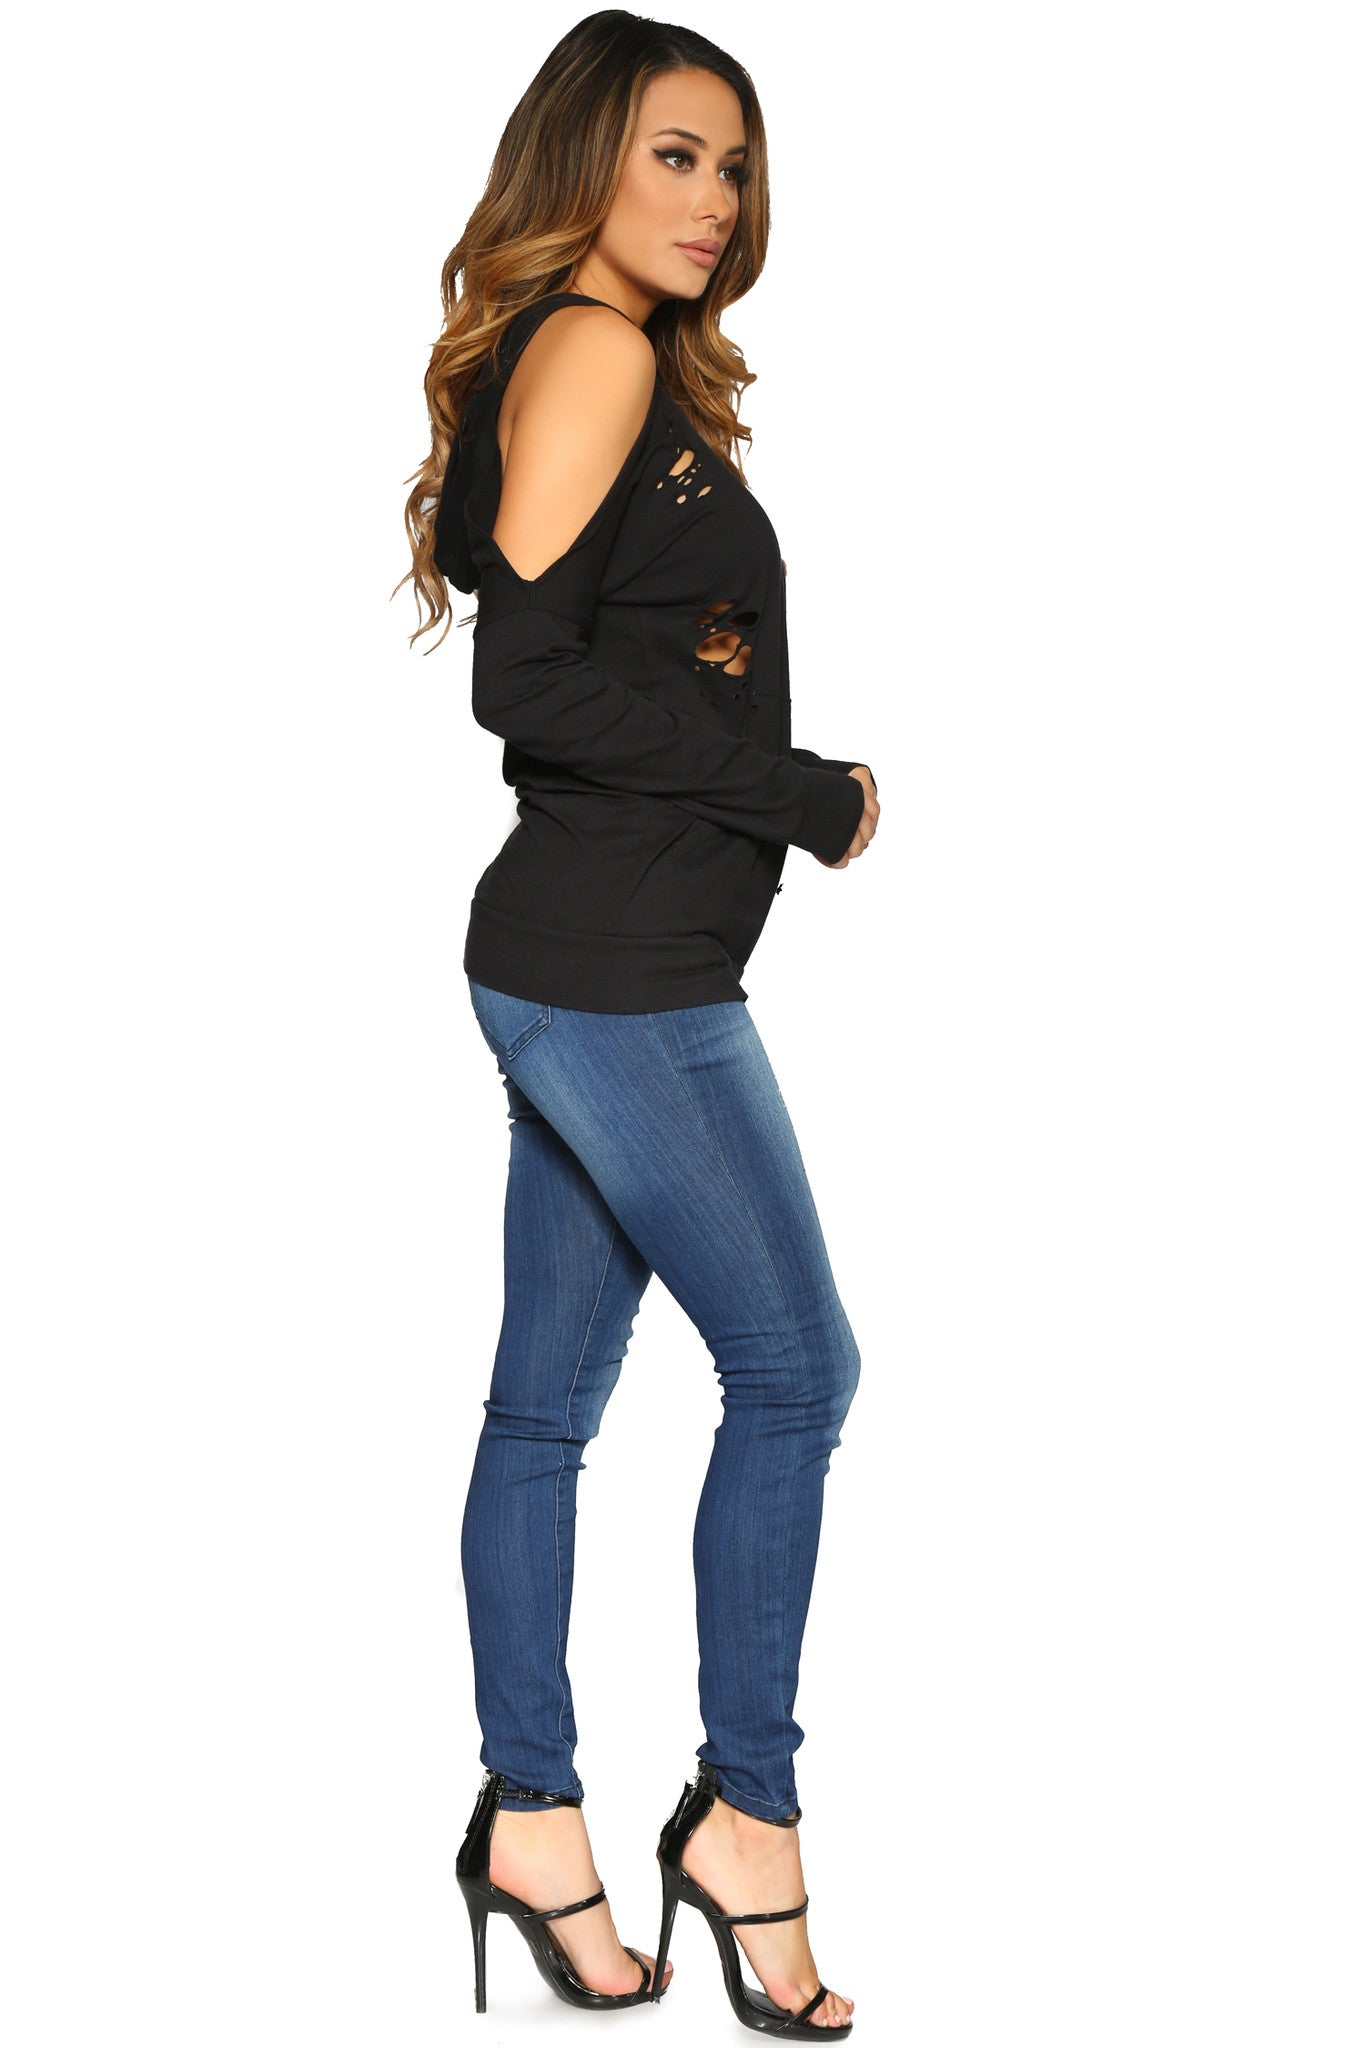 DIANDRA HOODIE BLACK GLAM ENVY SIDE PROFILE